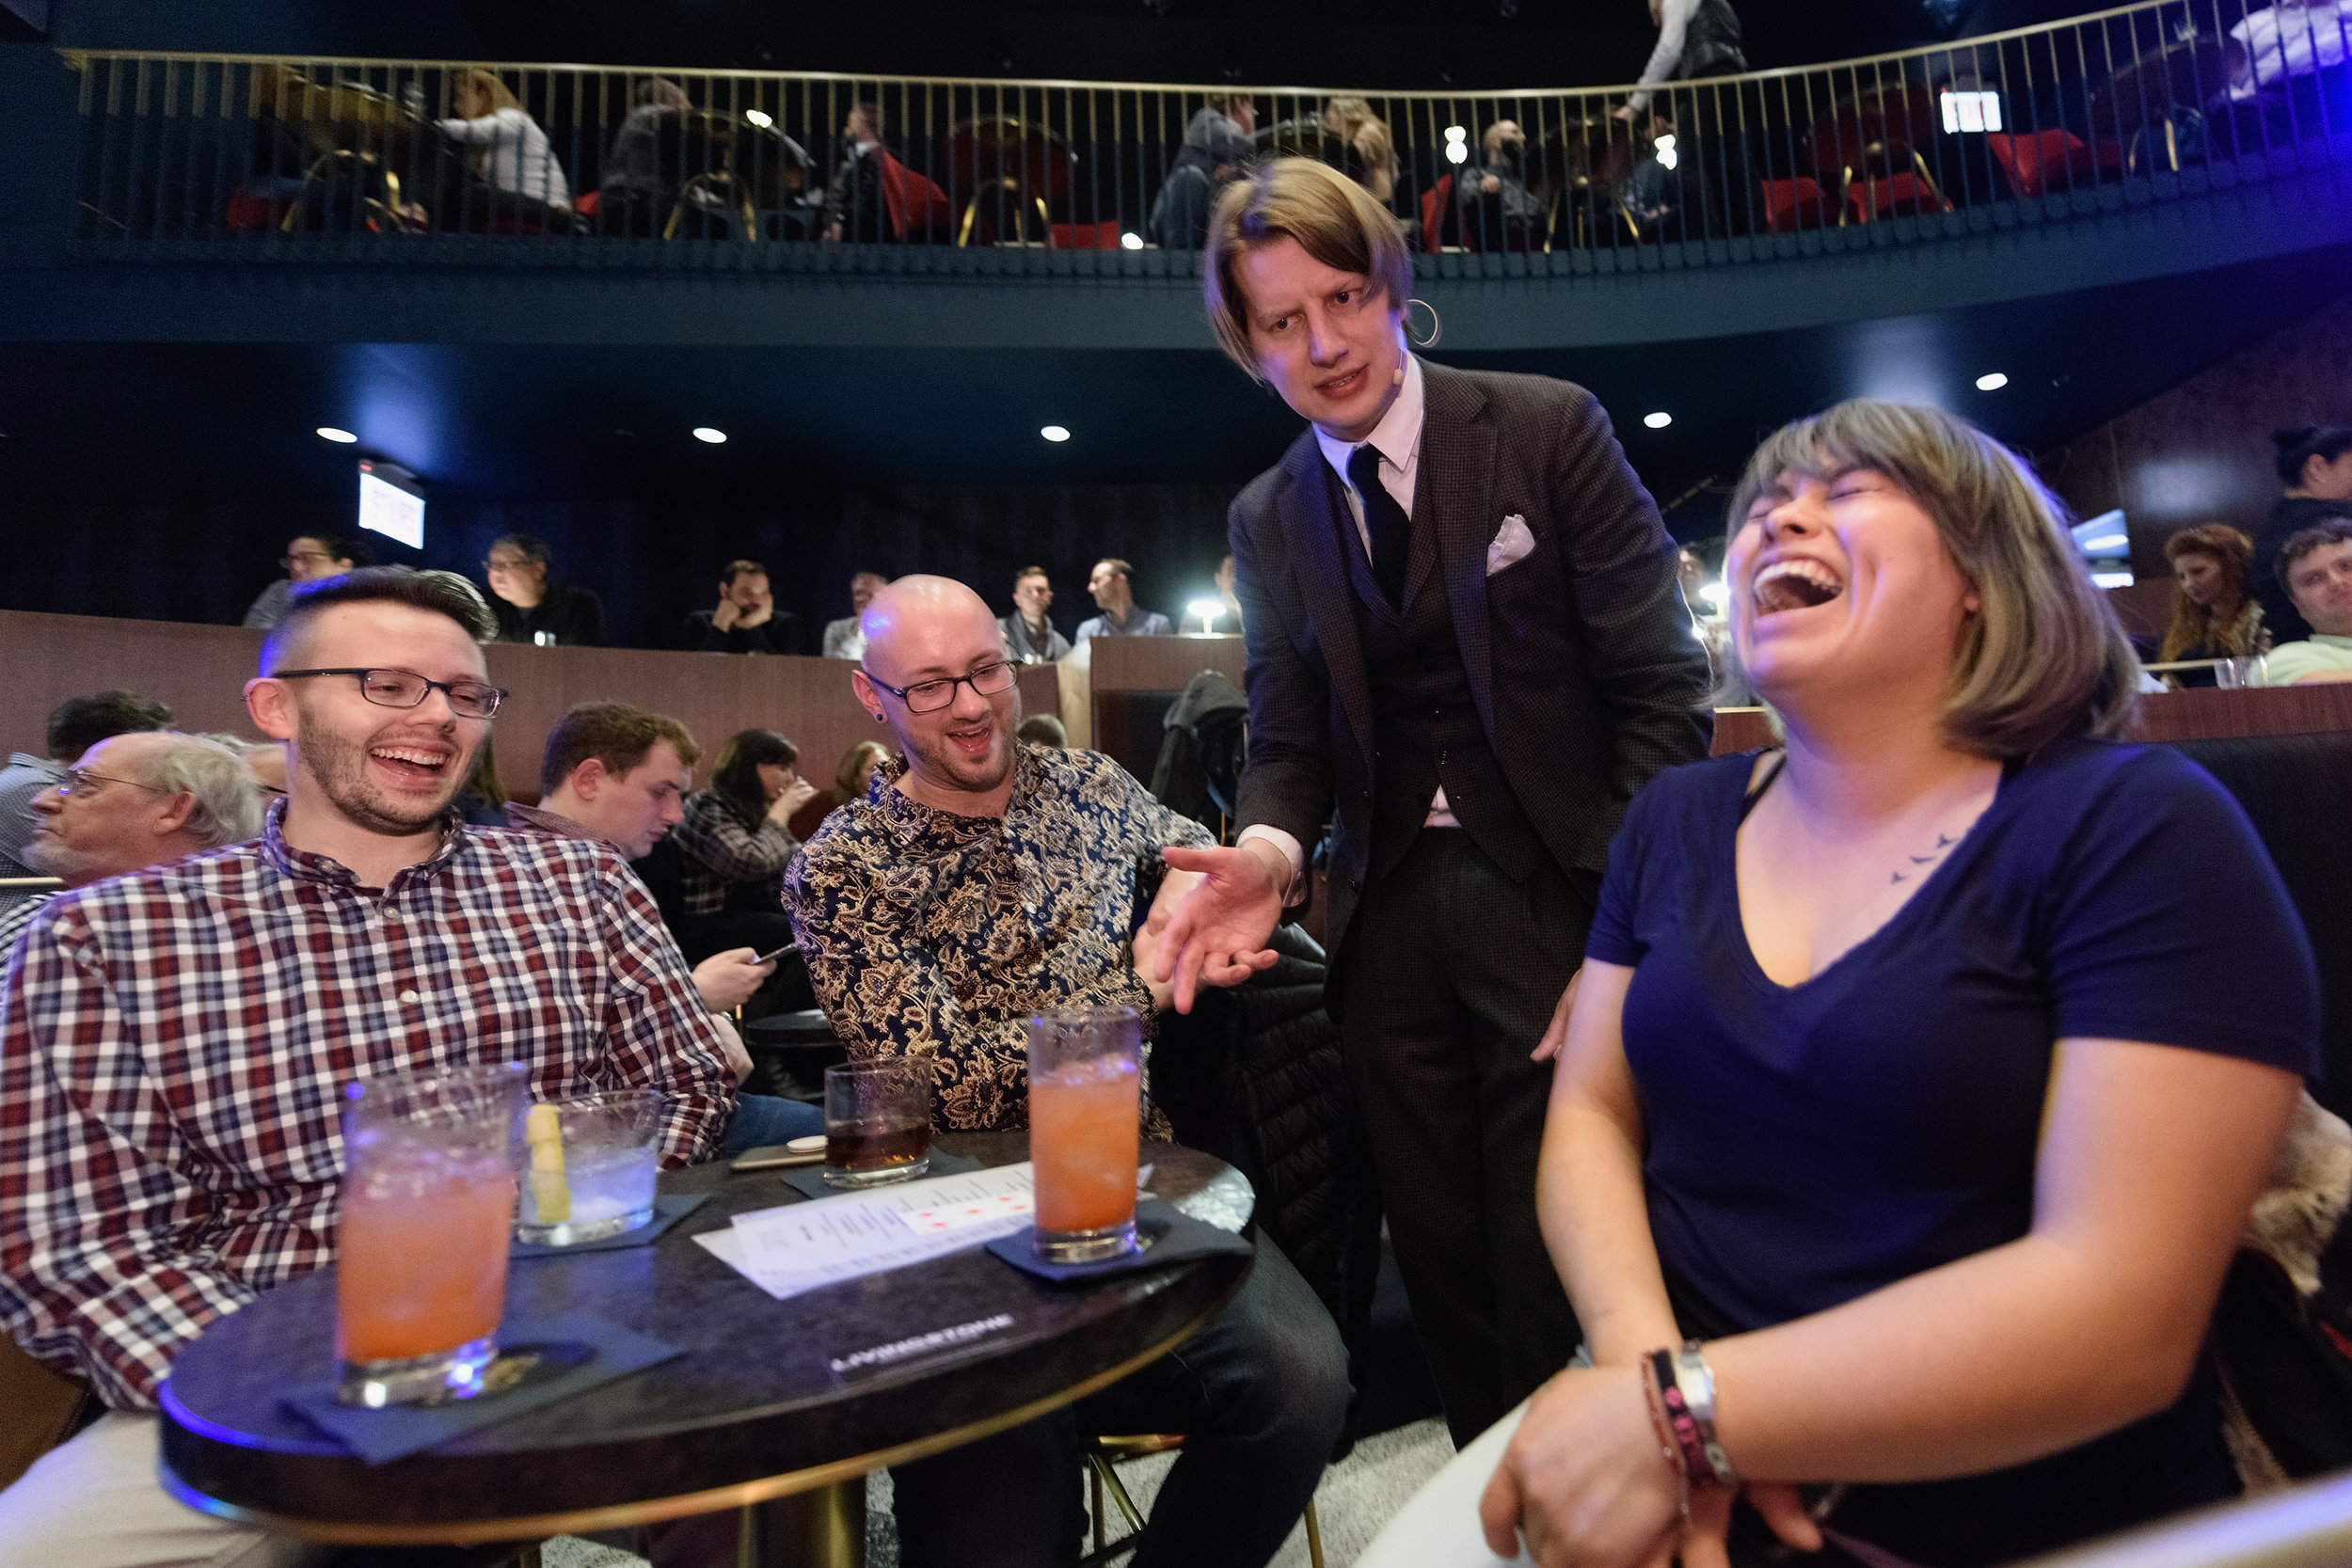 09_Magician Justin Purcell with Guests_Photo by Daniel Boczarski.jpg